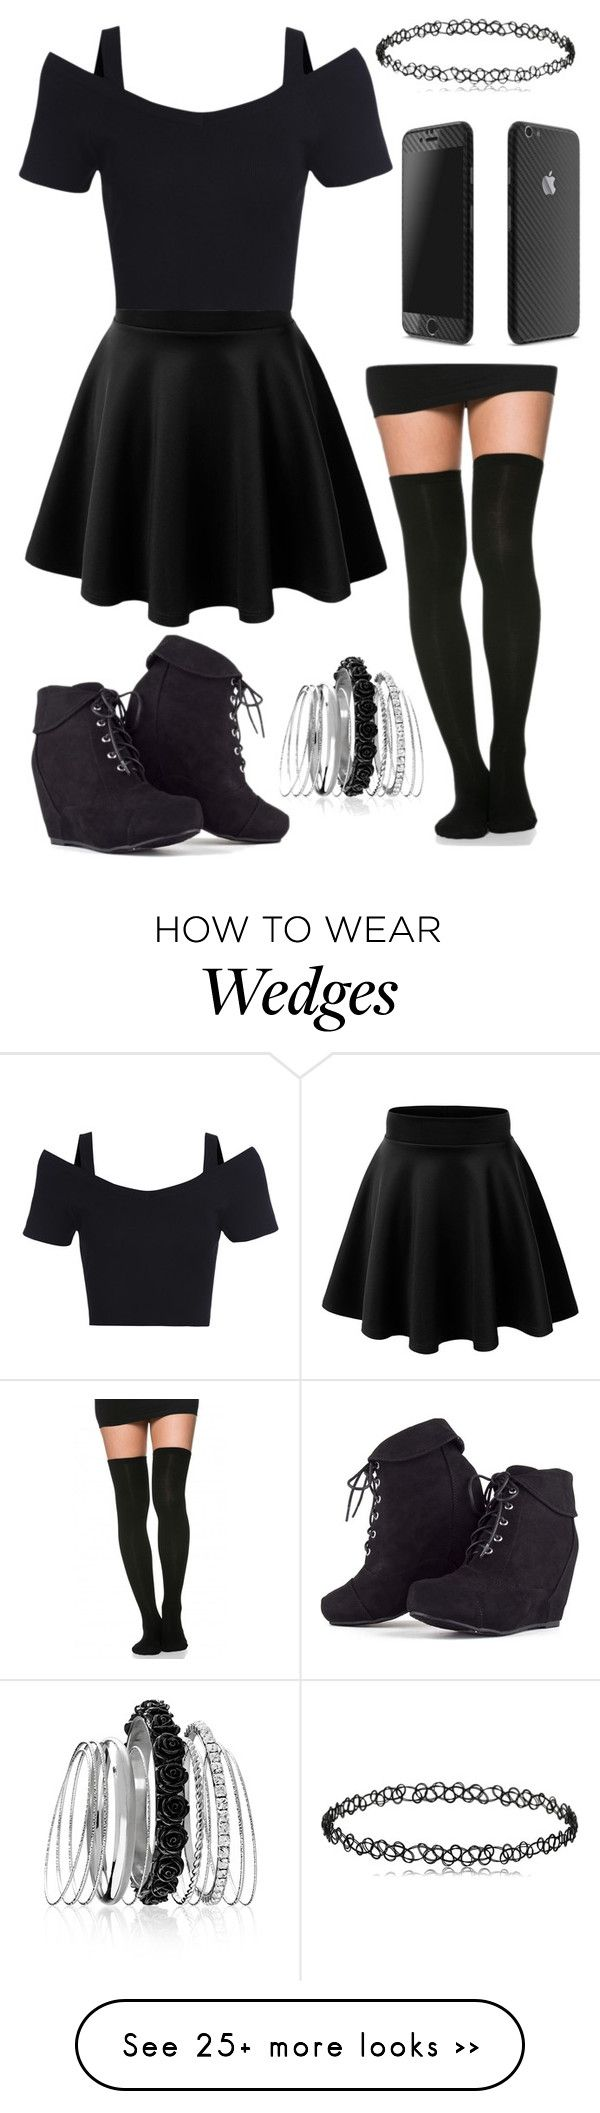 """OOTD"" by lodarling on Polyvore featuring Avenue"